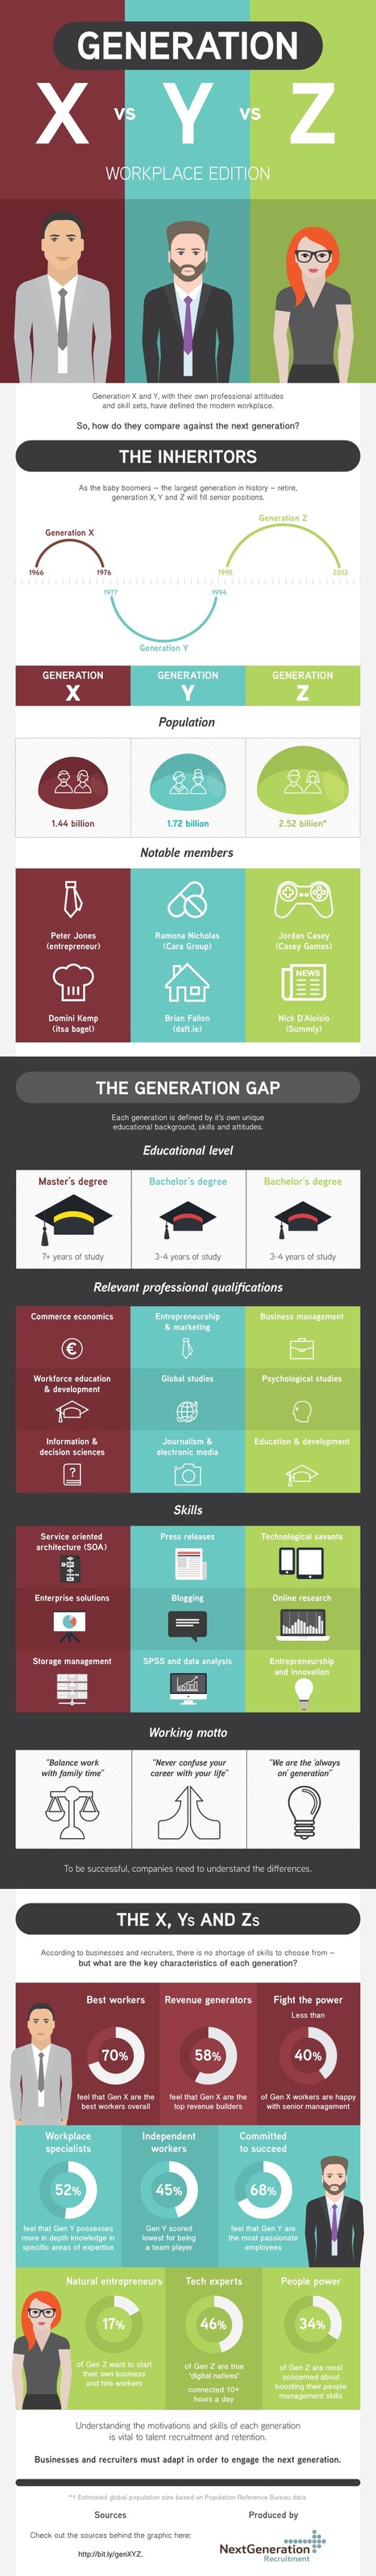 Generation X vs Y vs Z Workplace  (#Infographic) | EdTech News | Scoop.it